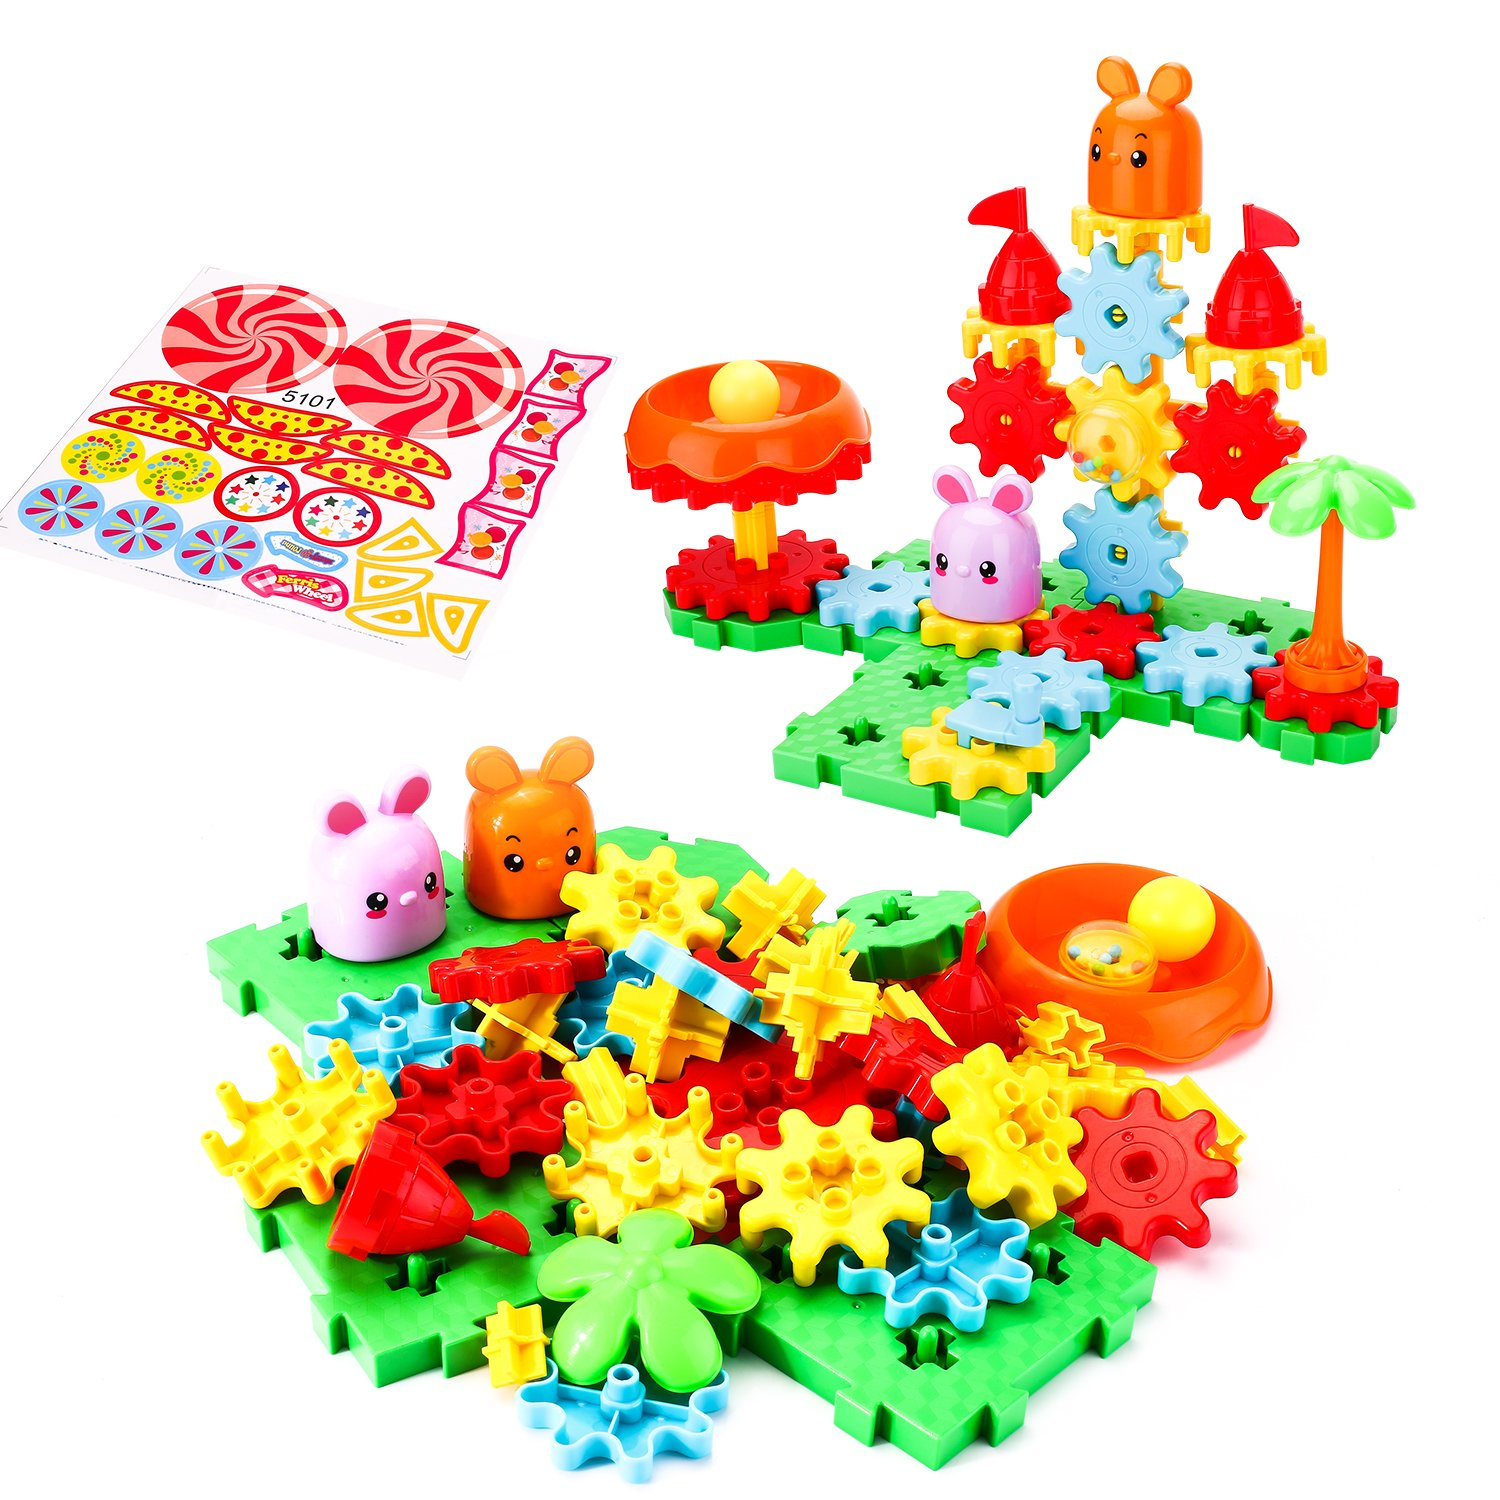 Biulotter Building Toy Set Educational Learning Stem Building Construction Toys 49 PCS Creative Engineering Tool 3+ Year Old Boys & Girls